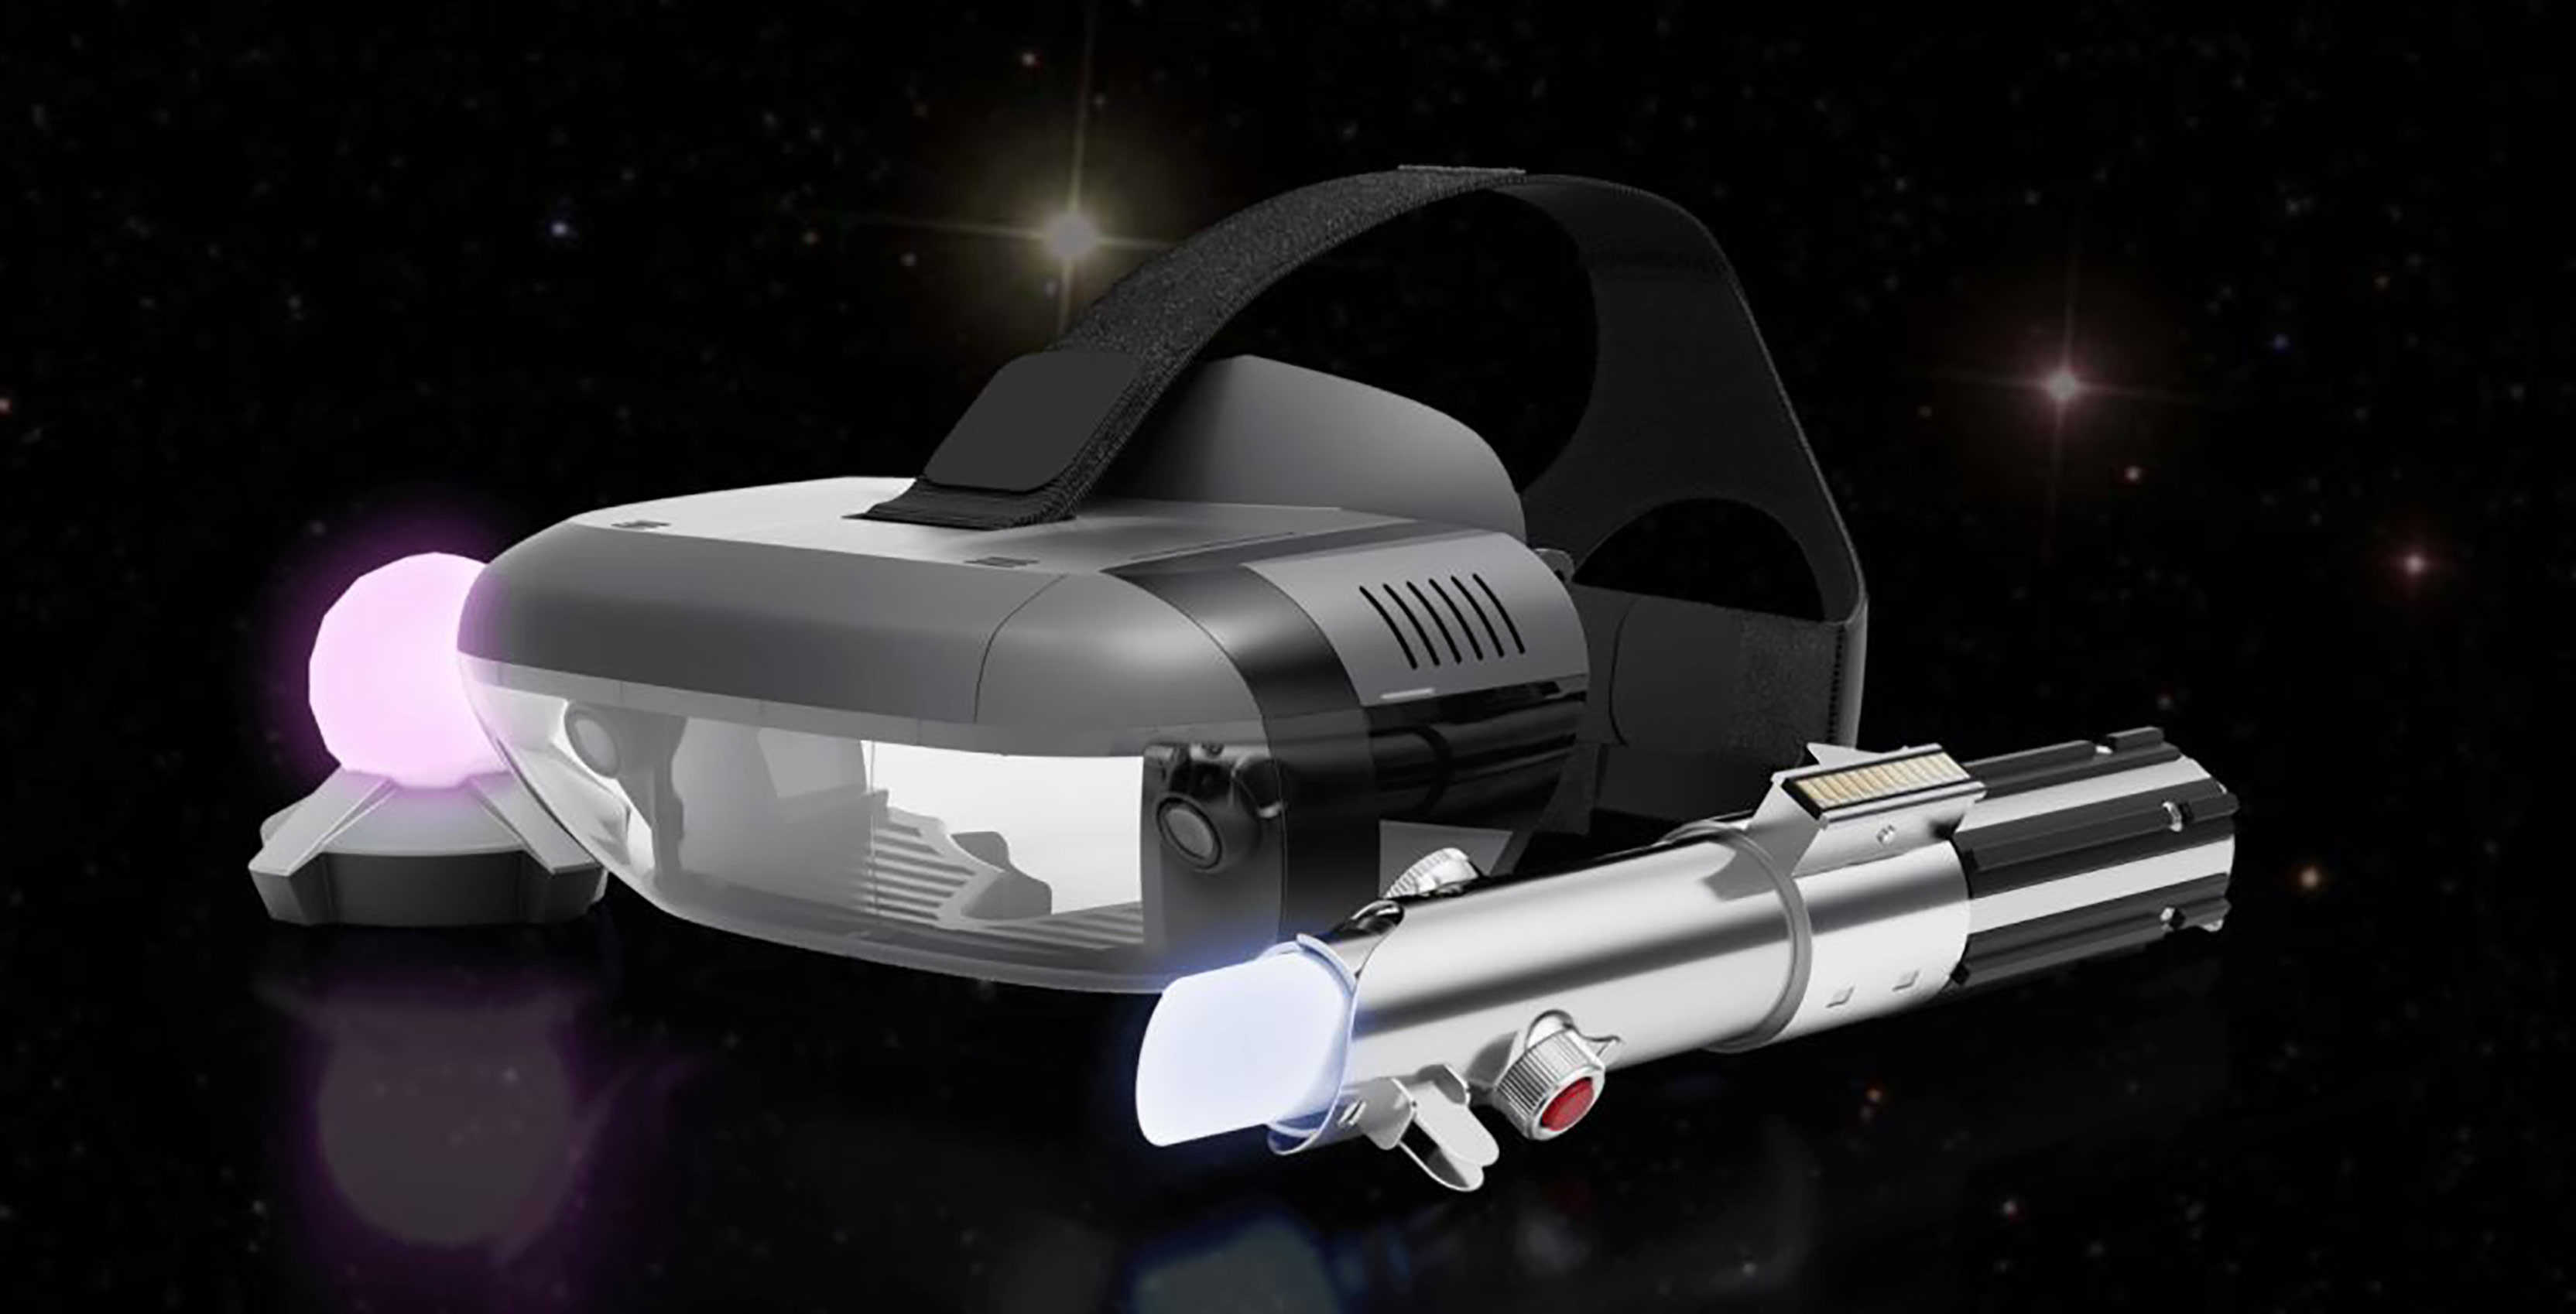 Lenovo mirage, with lightsaber controller and trackpad